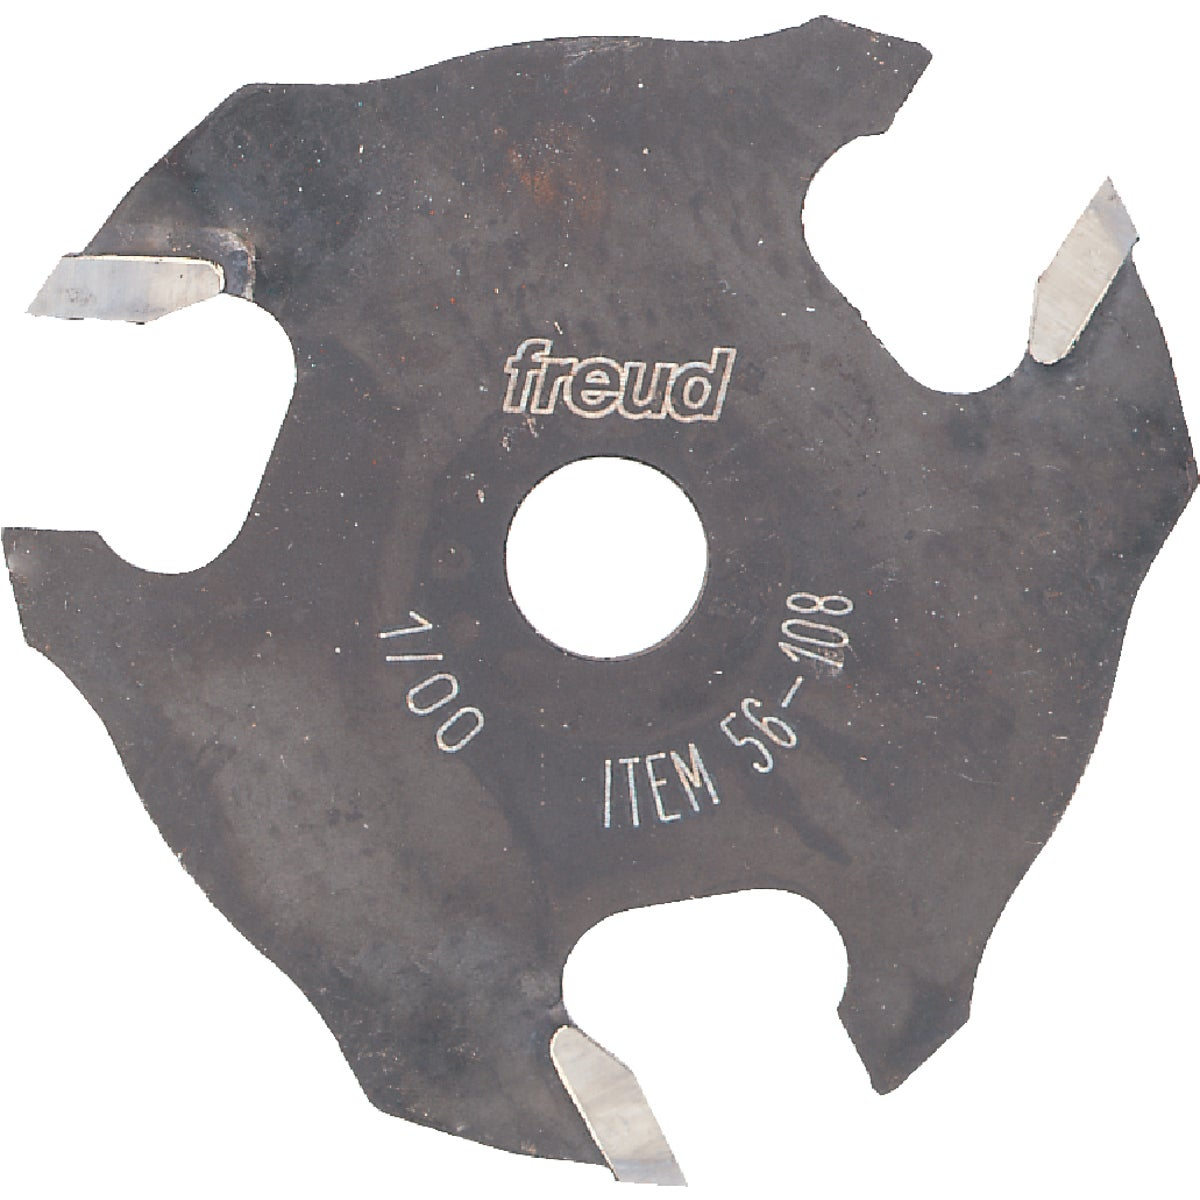 "1/8"" 3 SLOT CUTTER - 56-108 by Freud Inc"